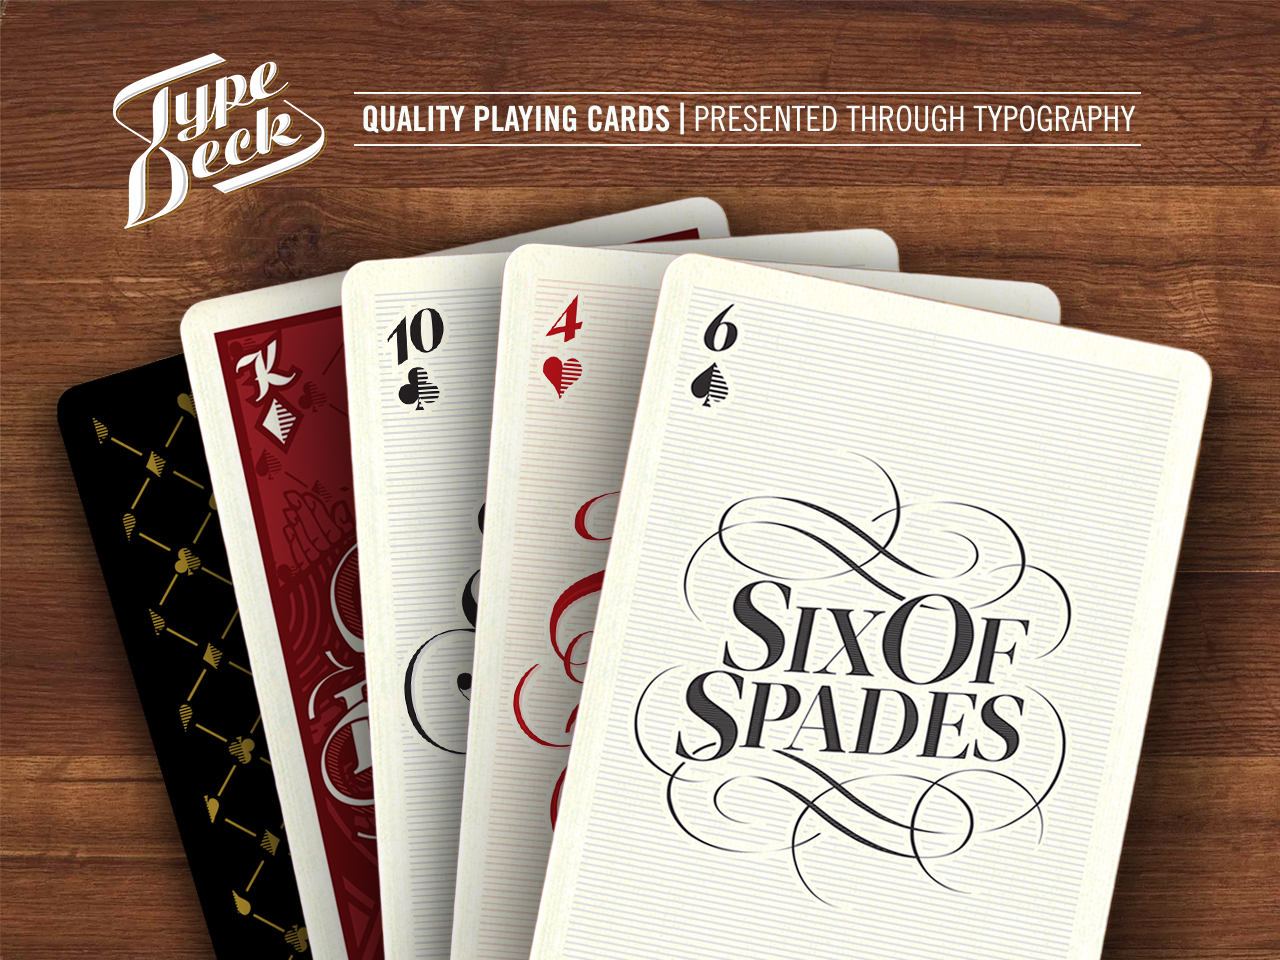 The Type Deck Typographic Playing Cards